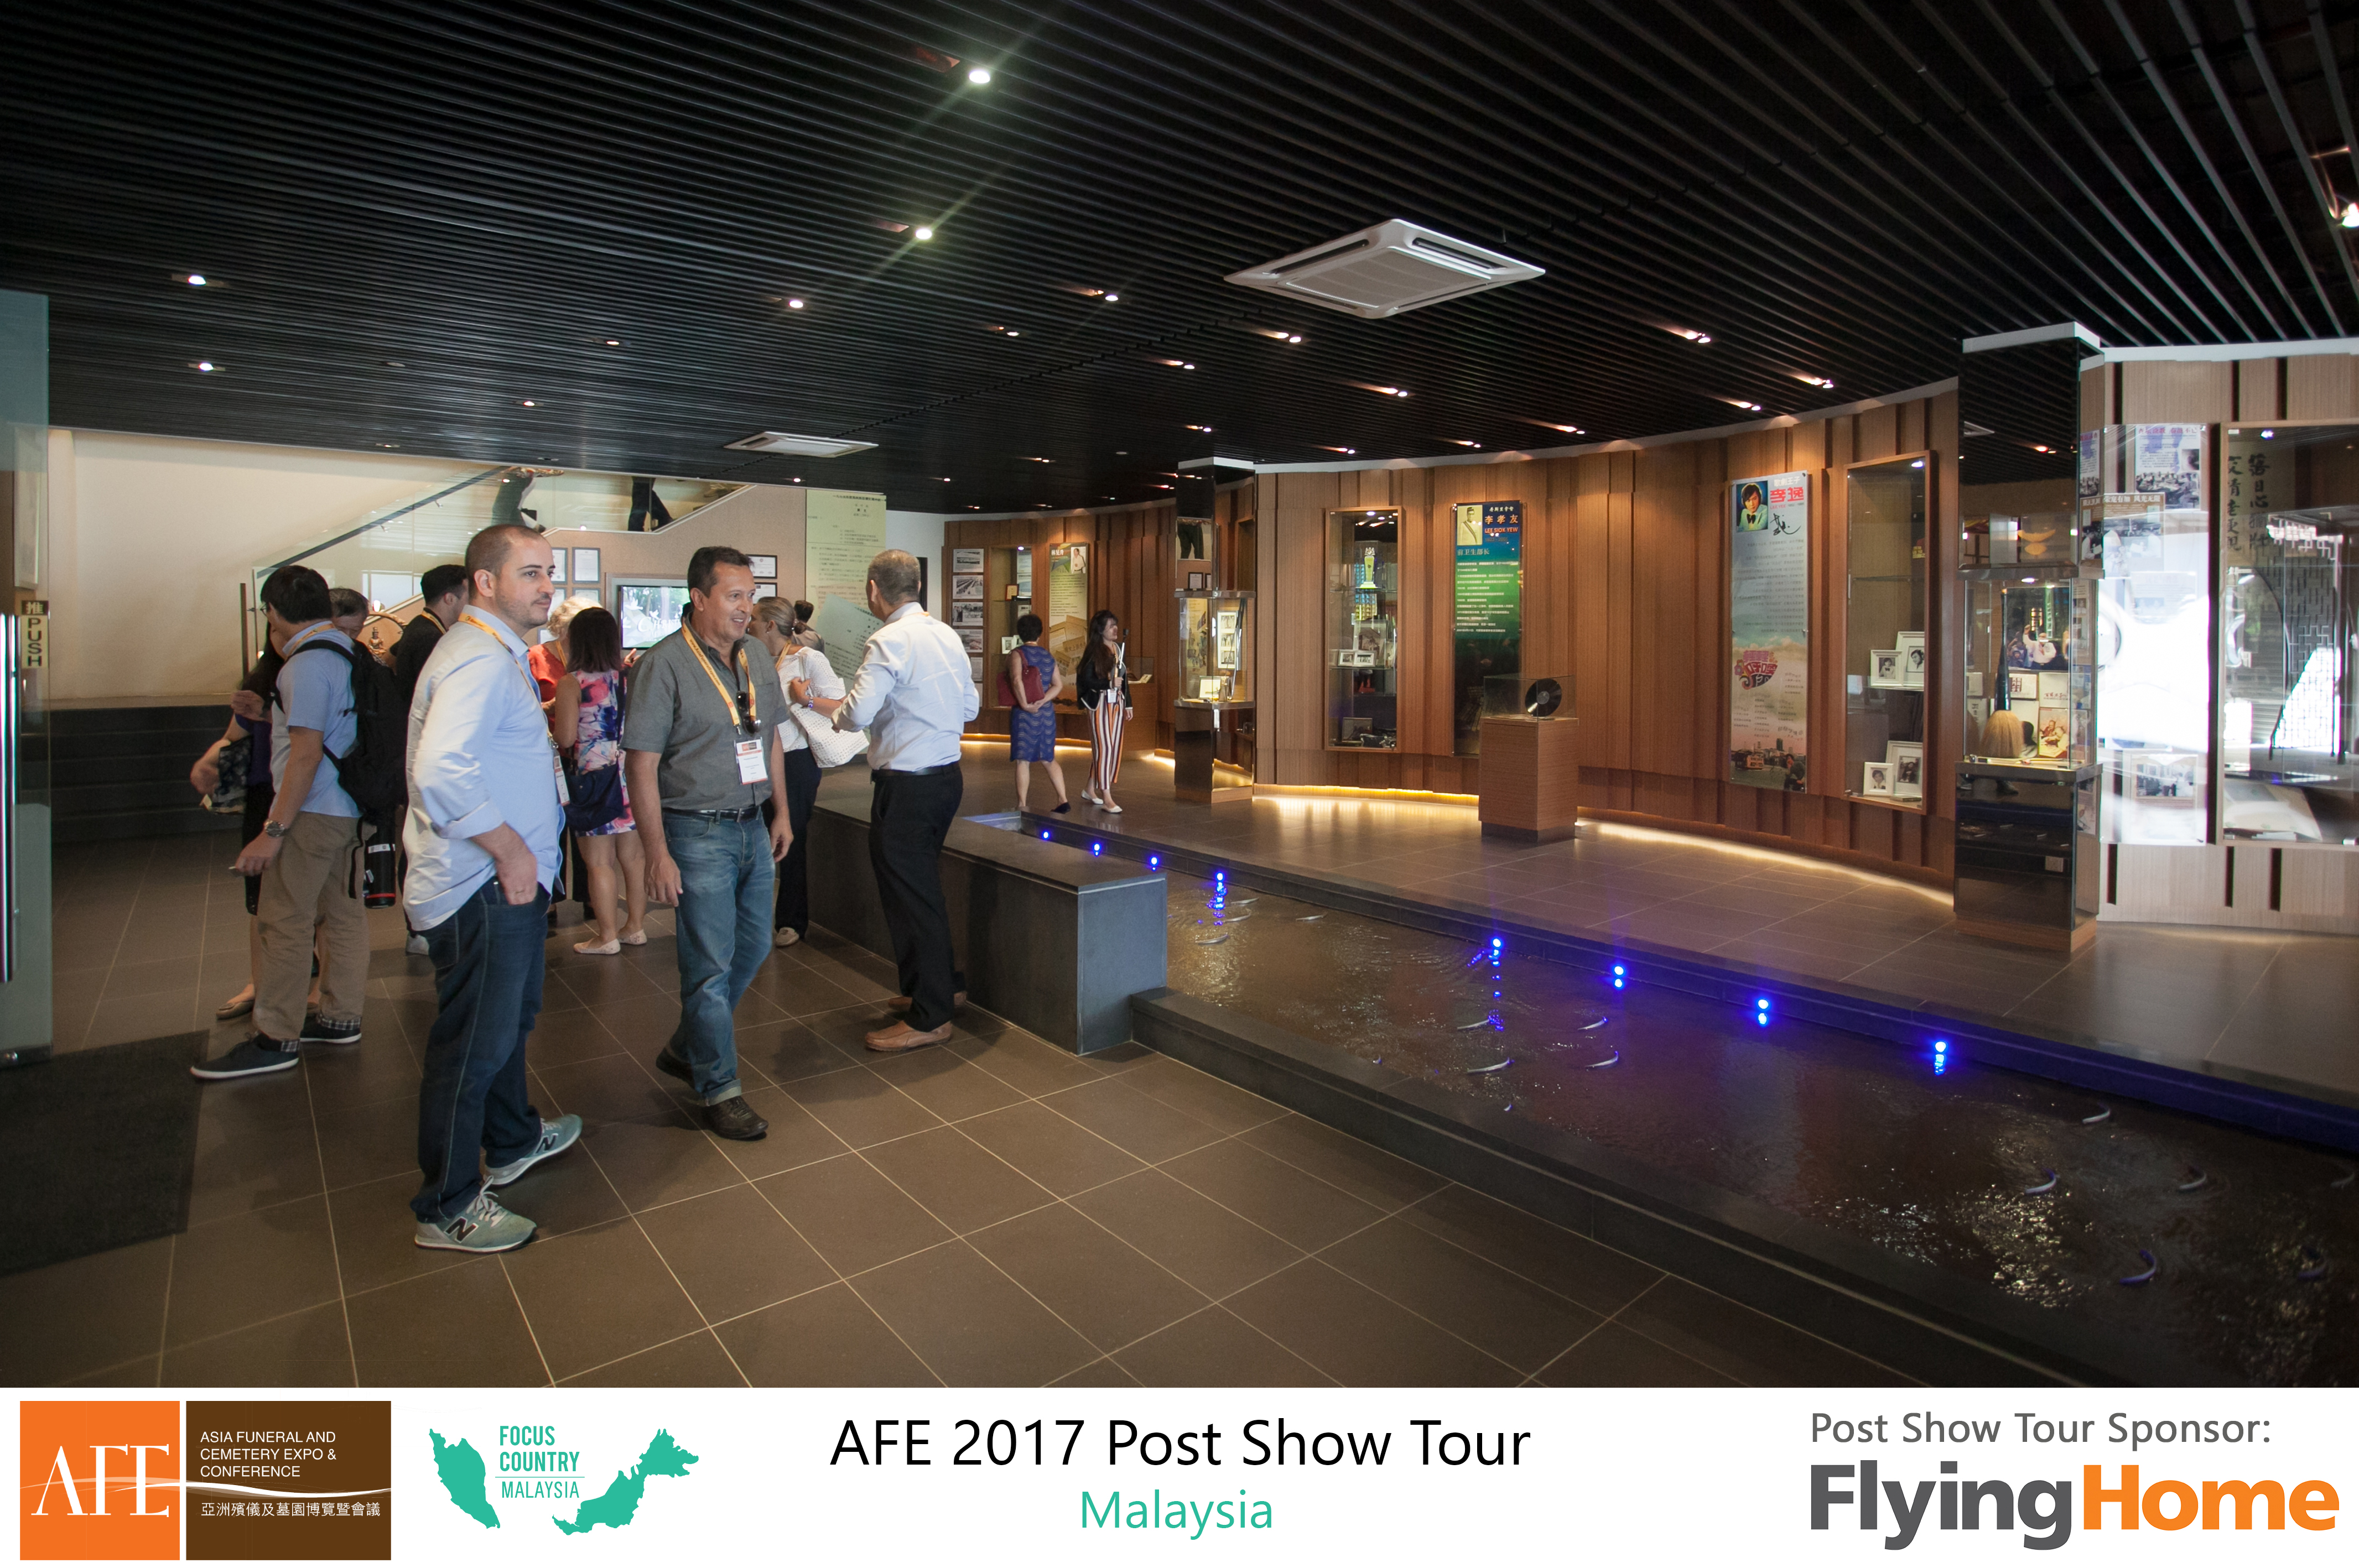 AFE Post Show Tour 2017 Day 2 - 03